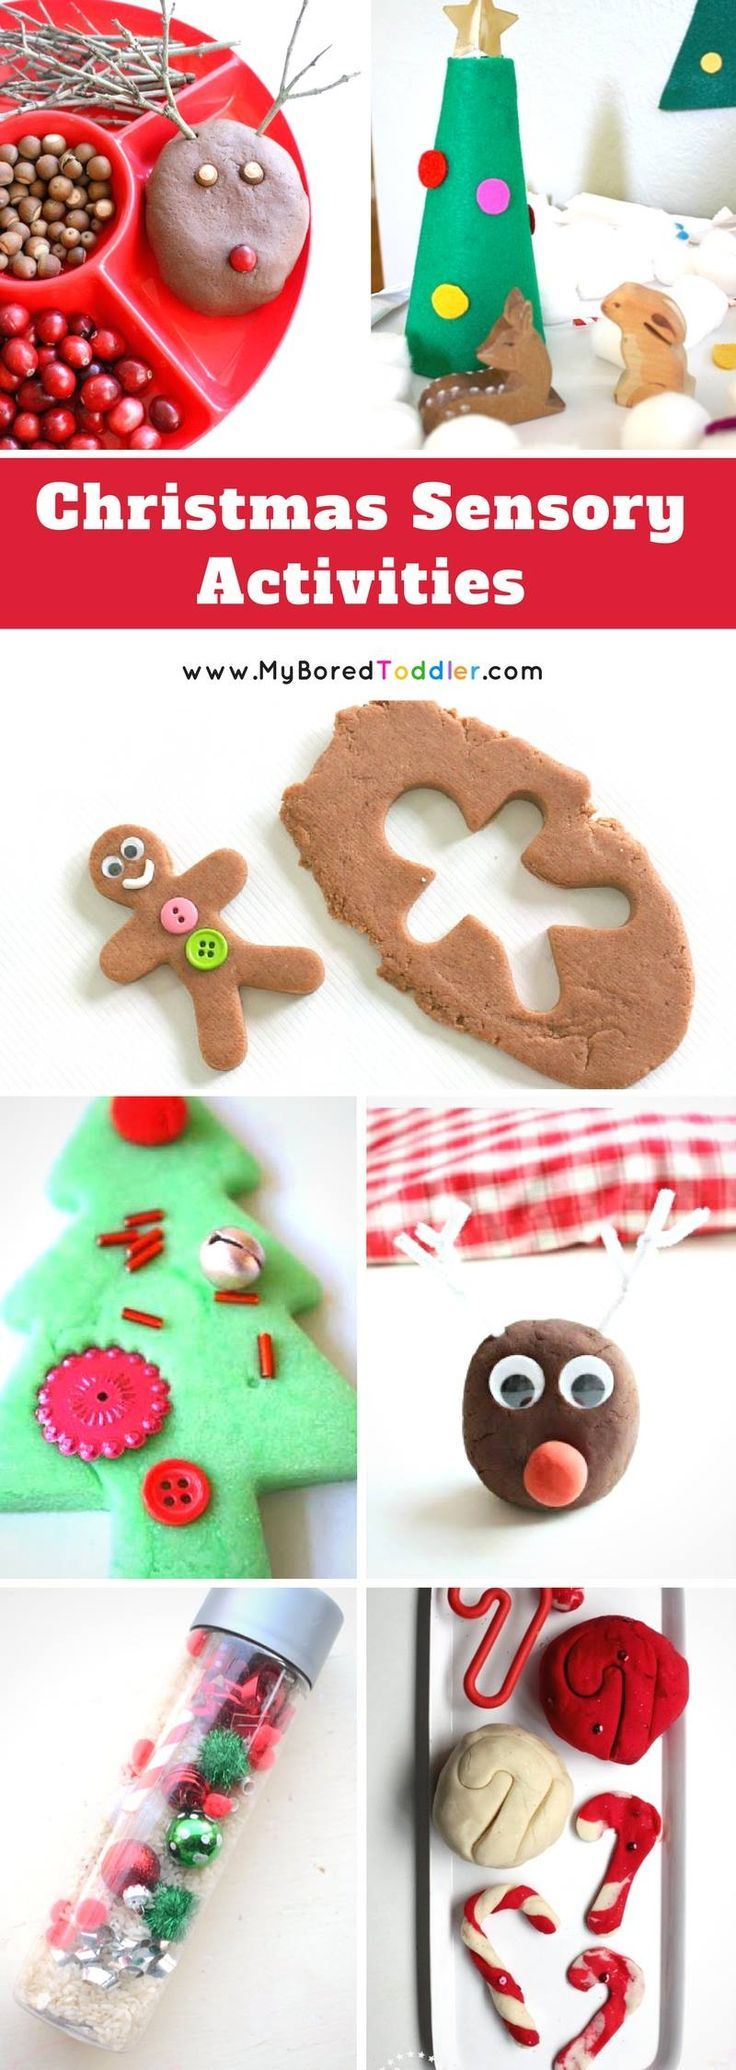 Christmas Sensory Play Ideas for Toddlers. Christmas is the perfect time for sensor play activities with your toddler or preschooler. We have over 40 great ideas.